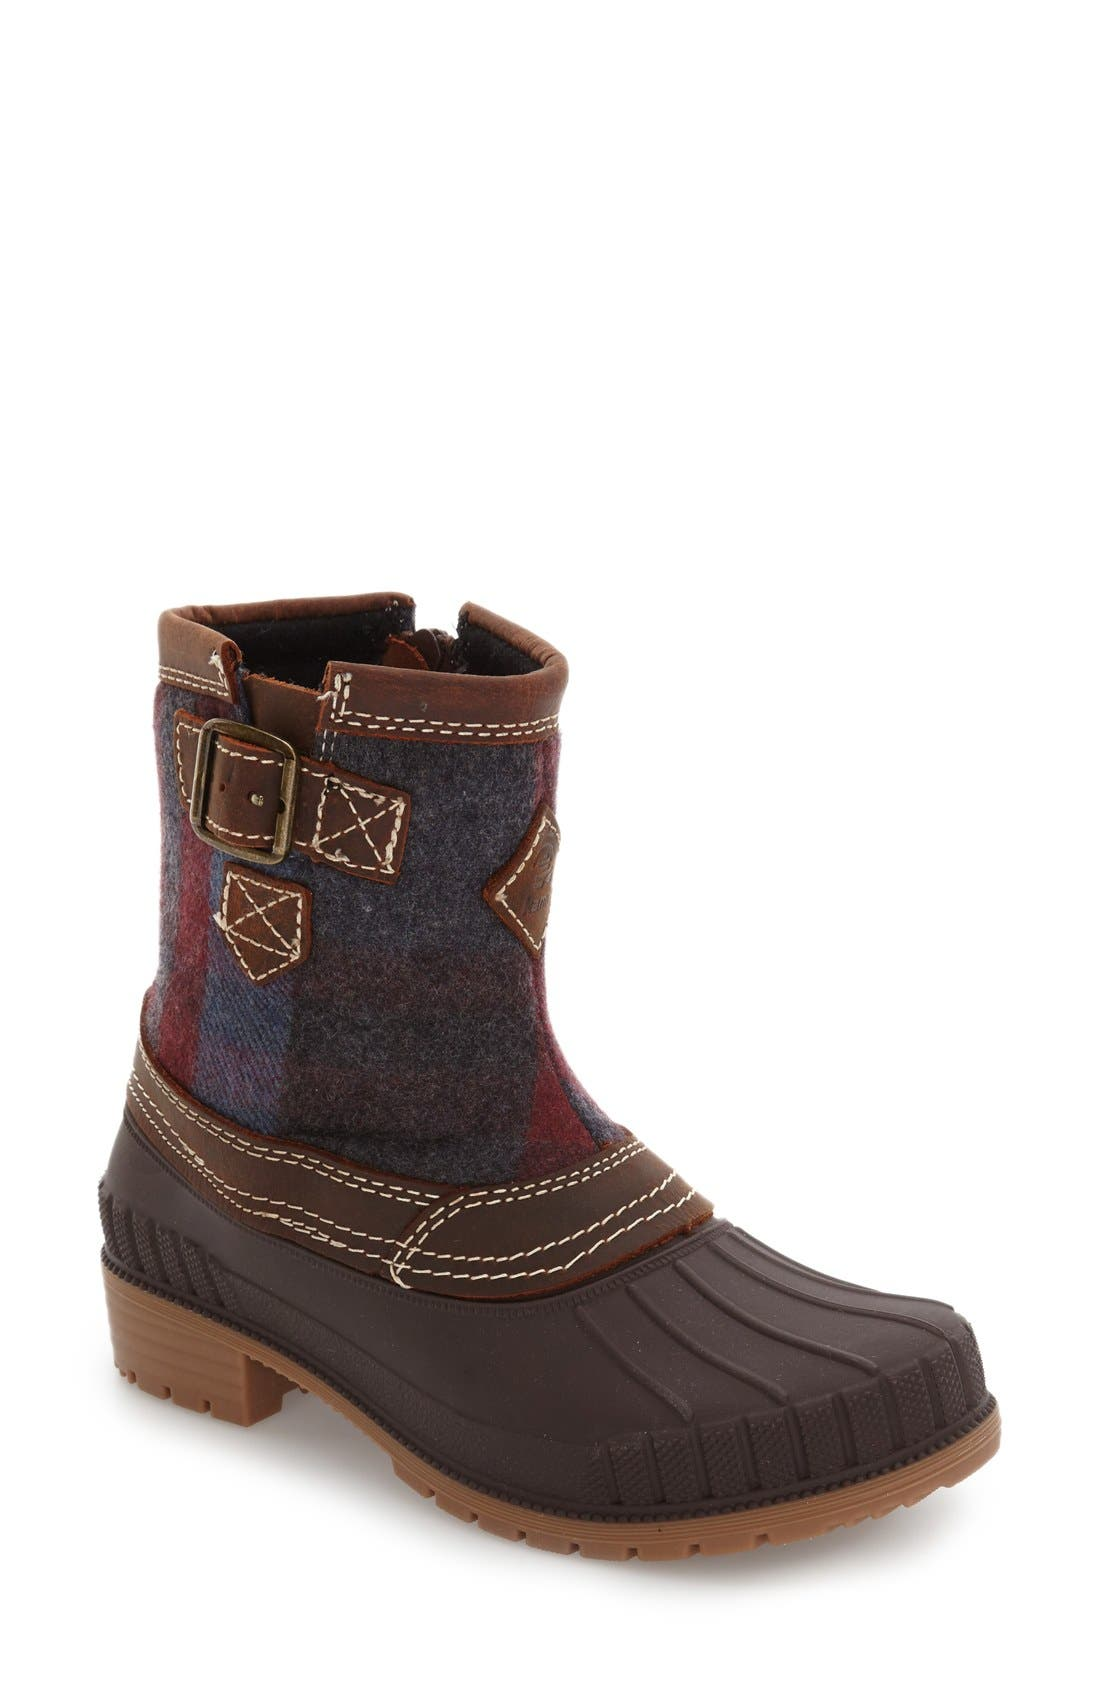 Avelle Waterproof Boot,                             Main thumbnail 1, color,                             DARK BROWN LEATHER